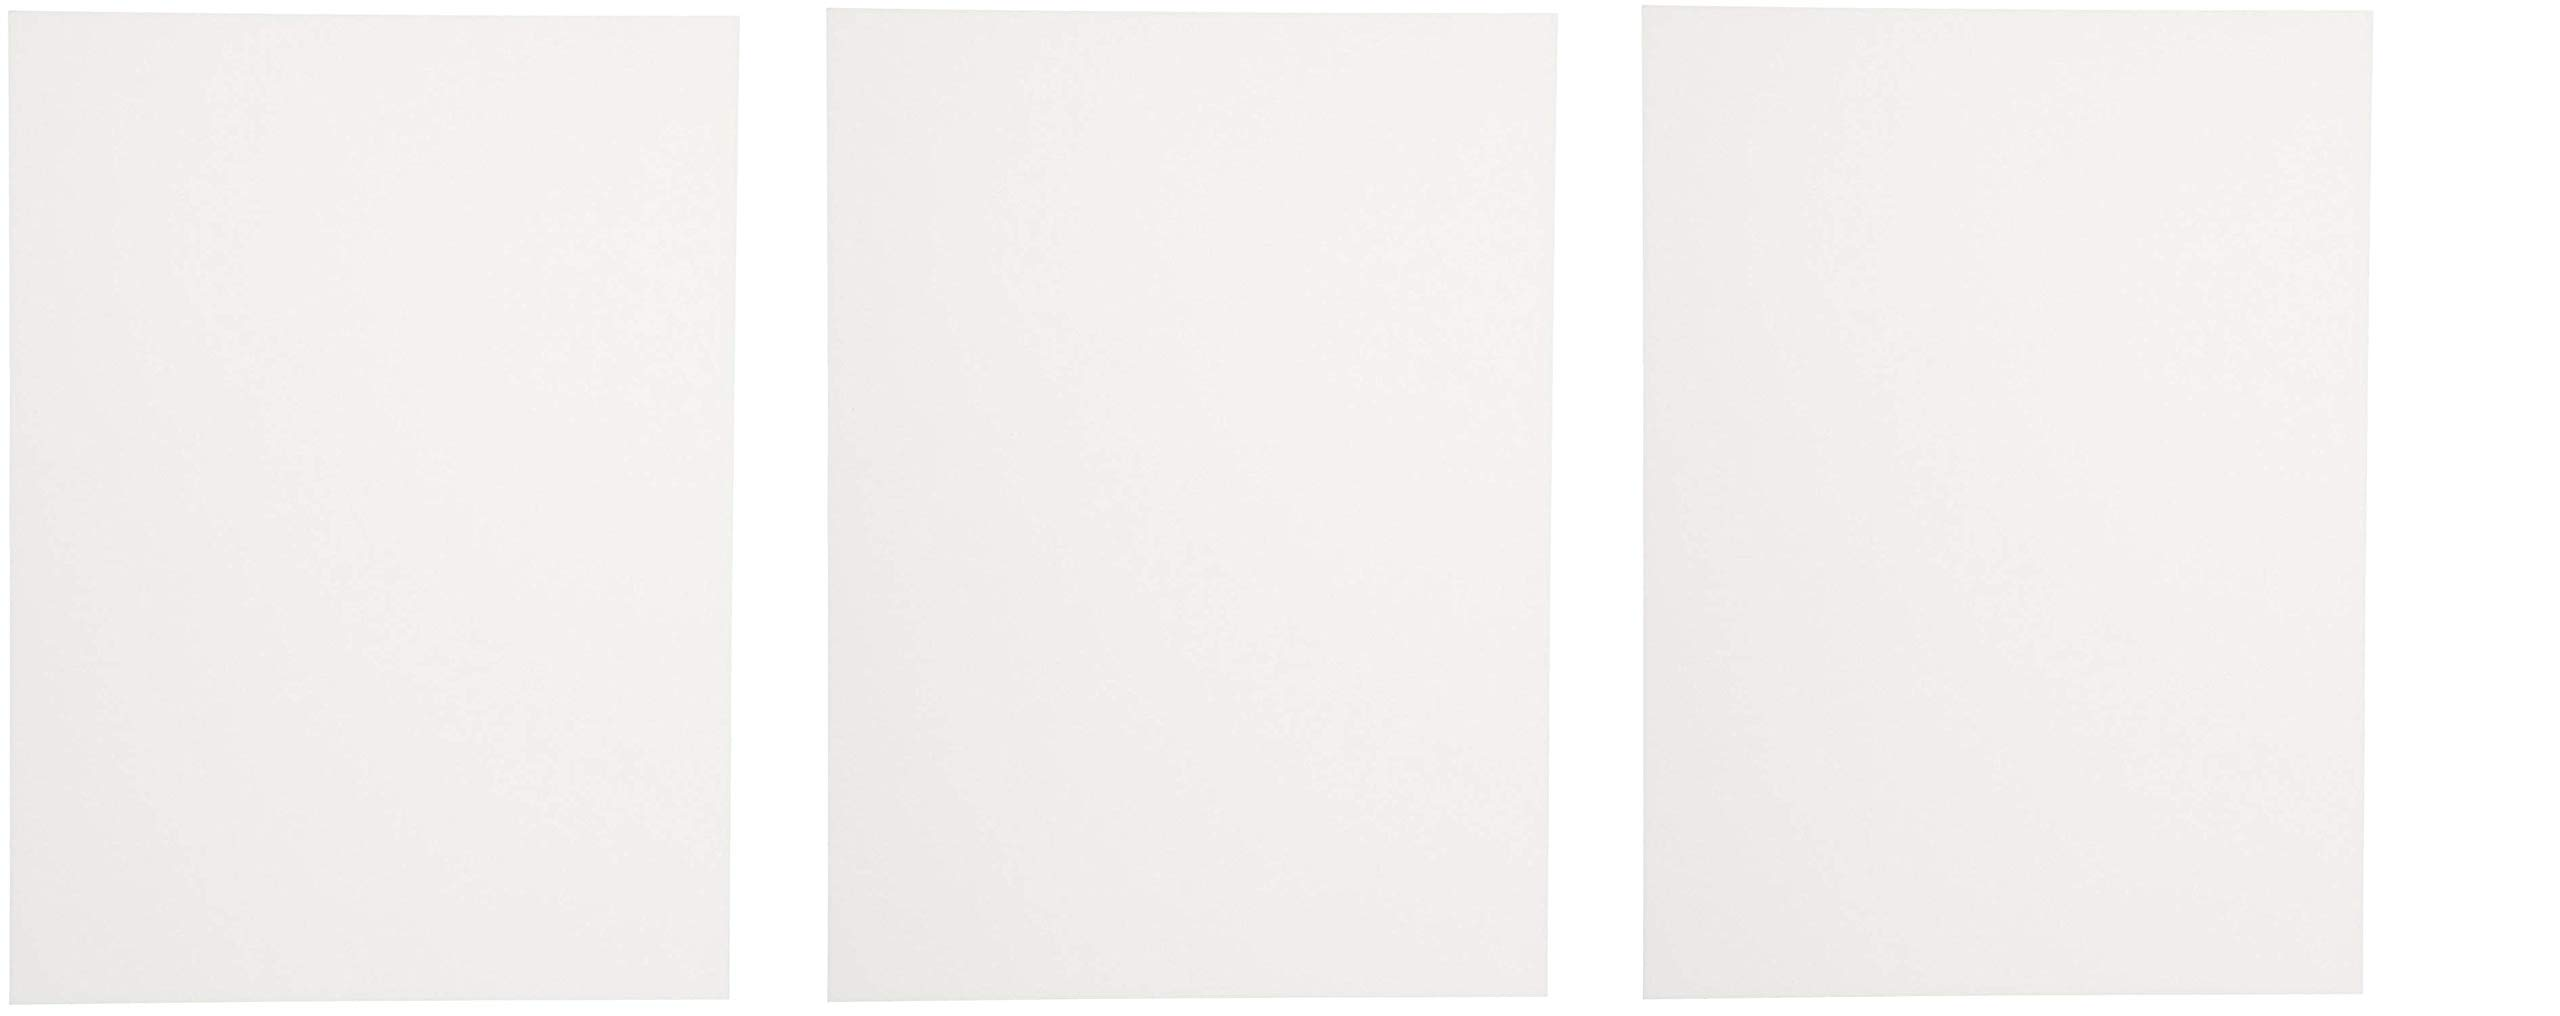 Sax Halifax Cold Press Watercolor Paper, 11 X 15 Inches, 90 lb, White, 100 Sheets (3 X Pack of 100)